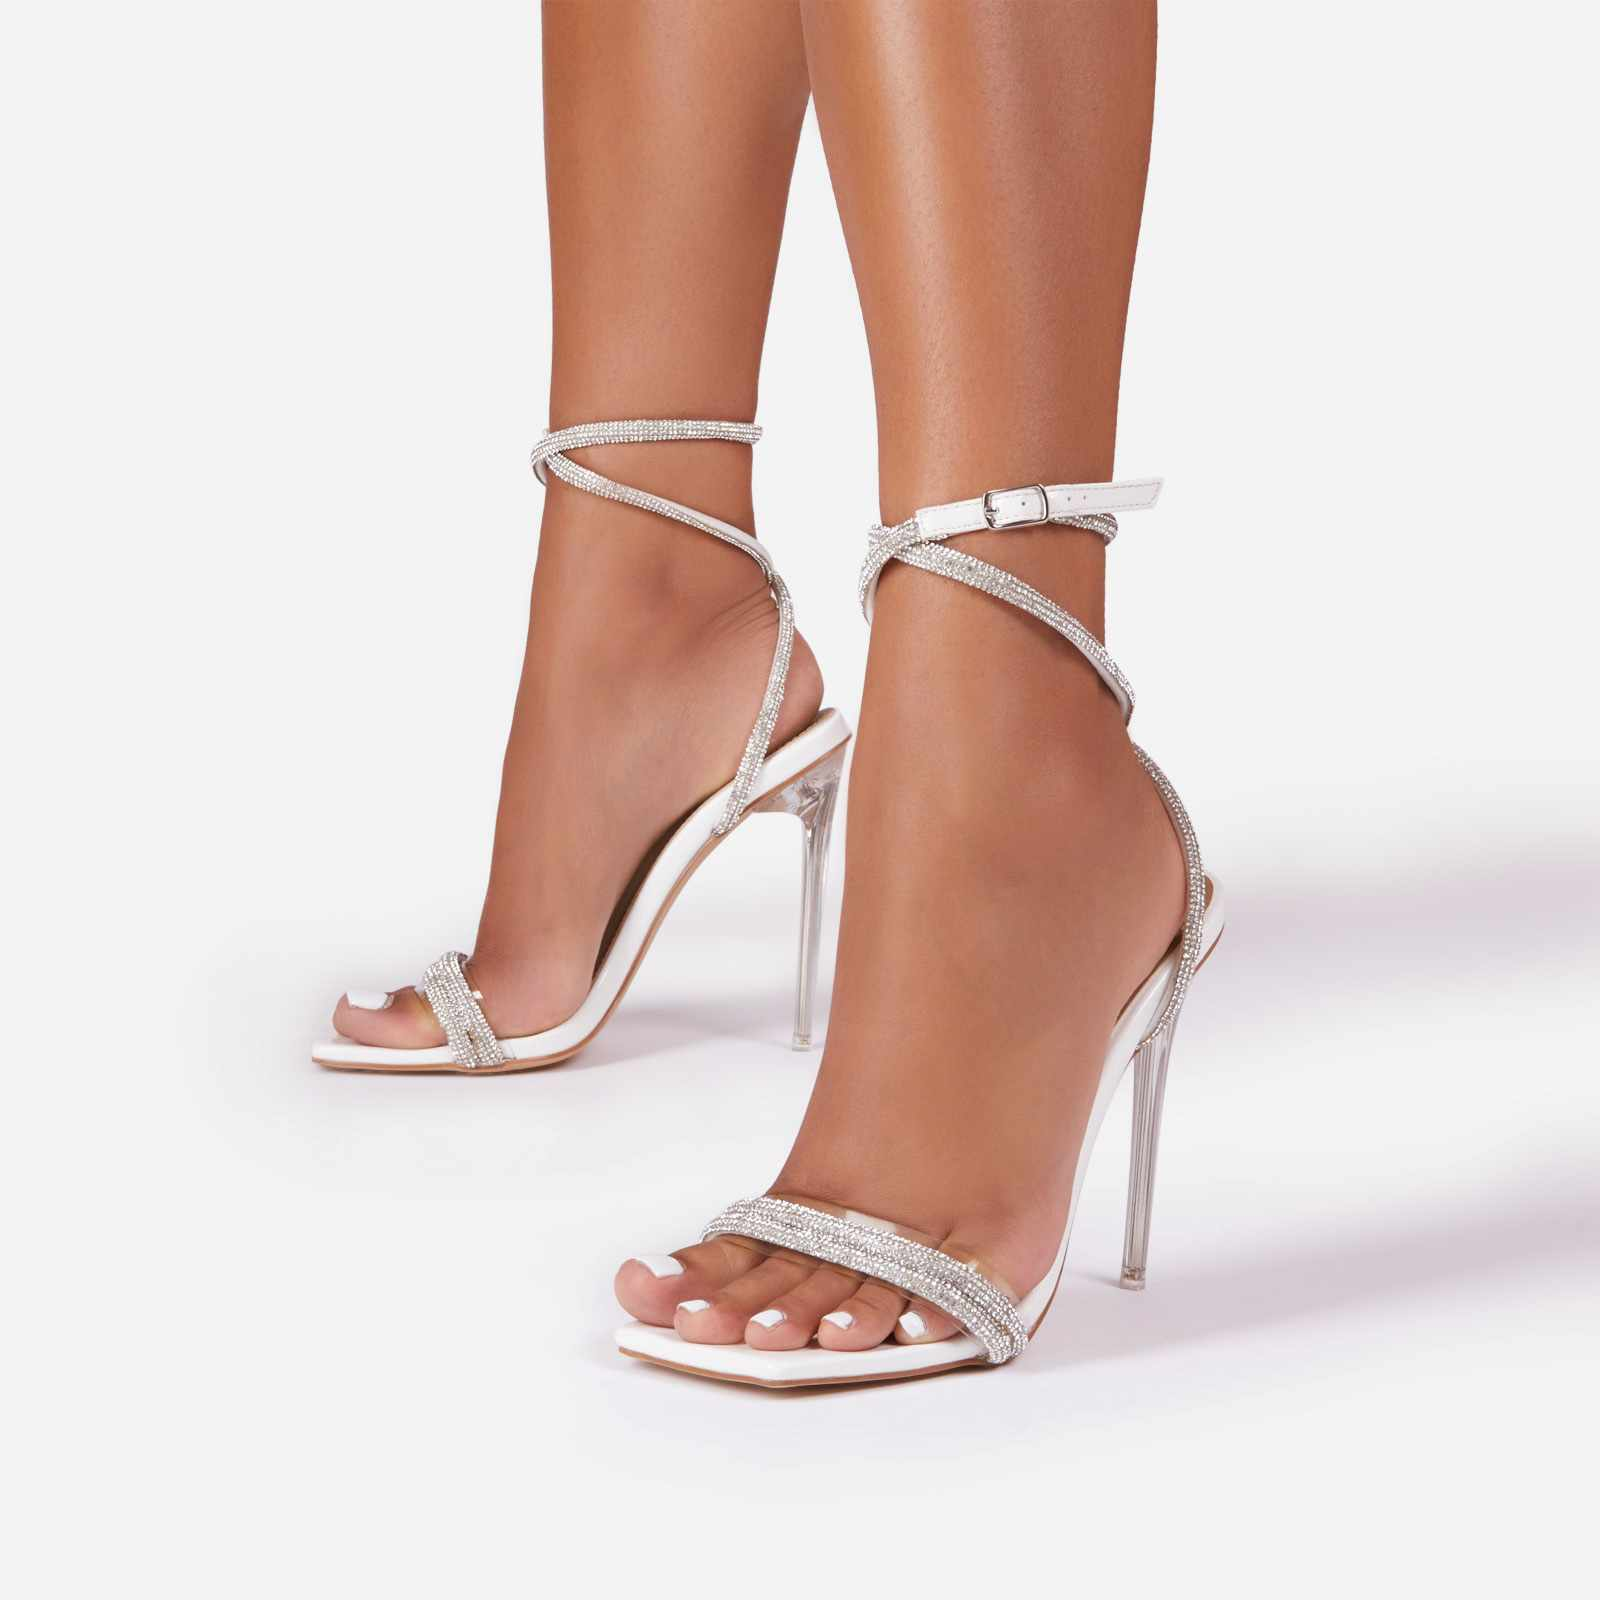 Ciara Diamante Chain Detail Square Toe Clear Perspex Heel In White Patent